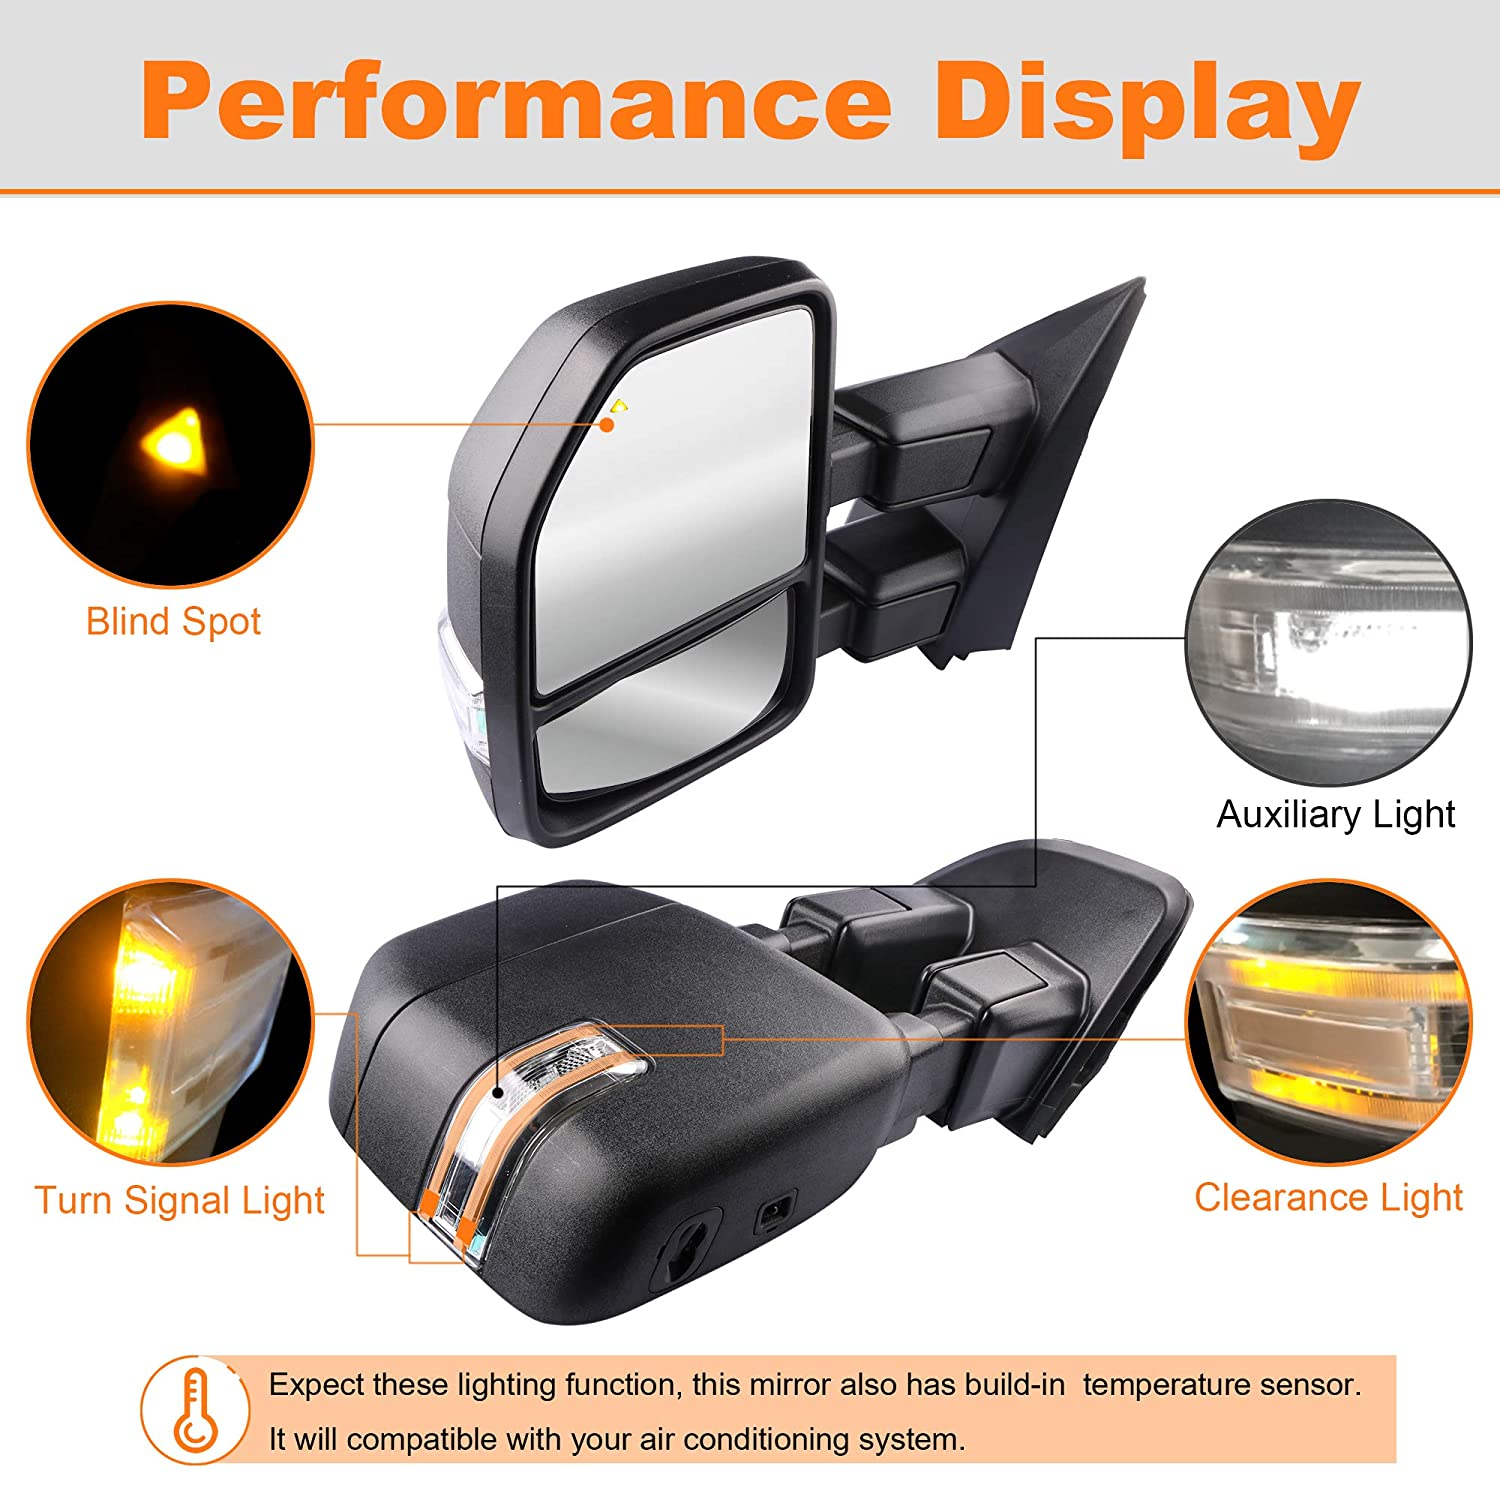 MOSTPLUS New Power Heated Towing Mirrors w//Temperature Sensor for Ford Super Duty F-250 F-350 F-450 F-550 2017 2018 w//Blind Spot,Turn Signal,Clearance and Auxiliary Lamp Set of 2